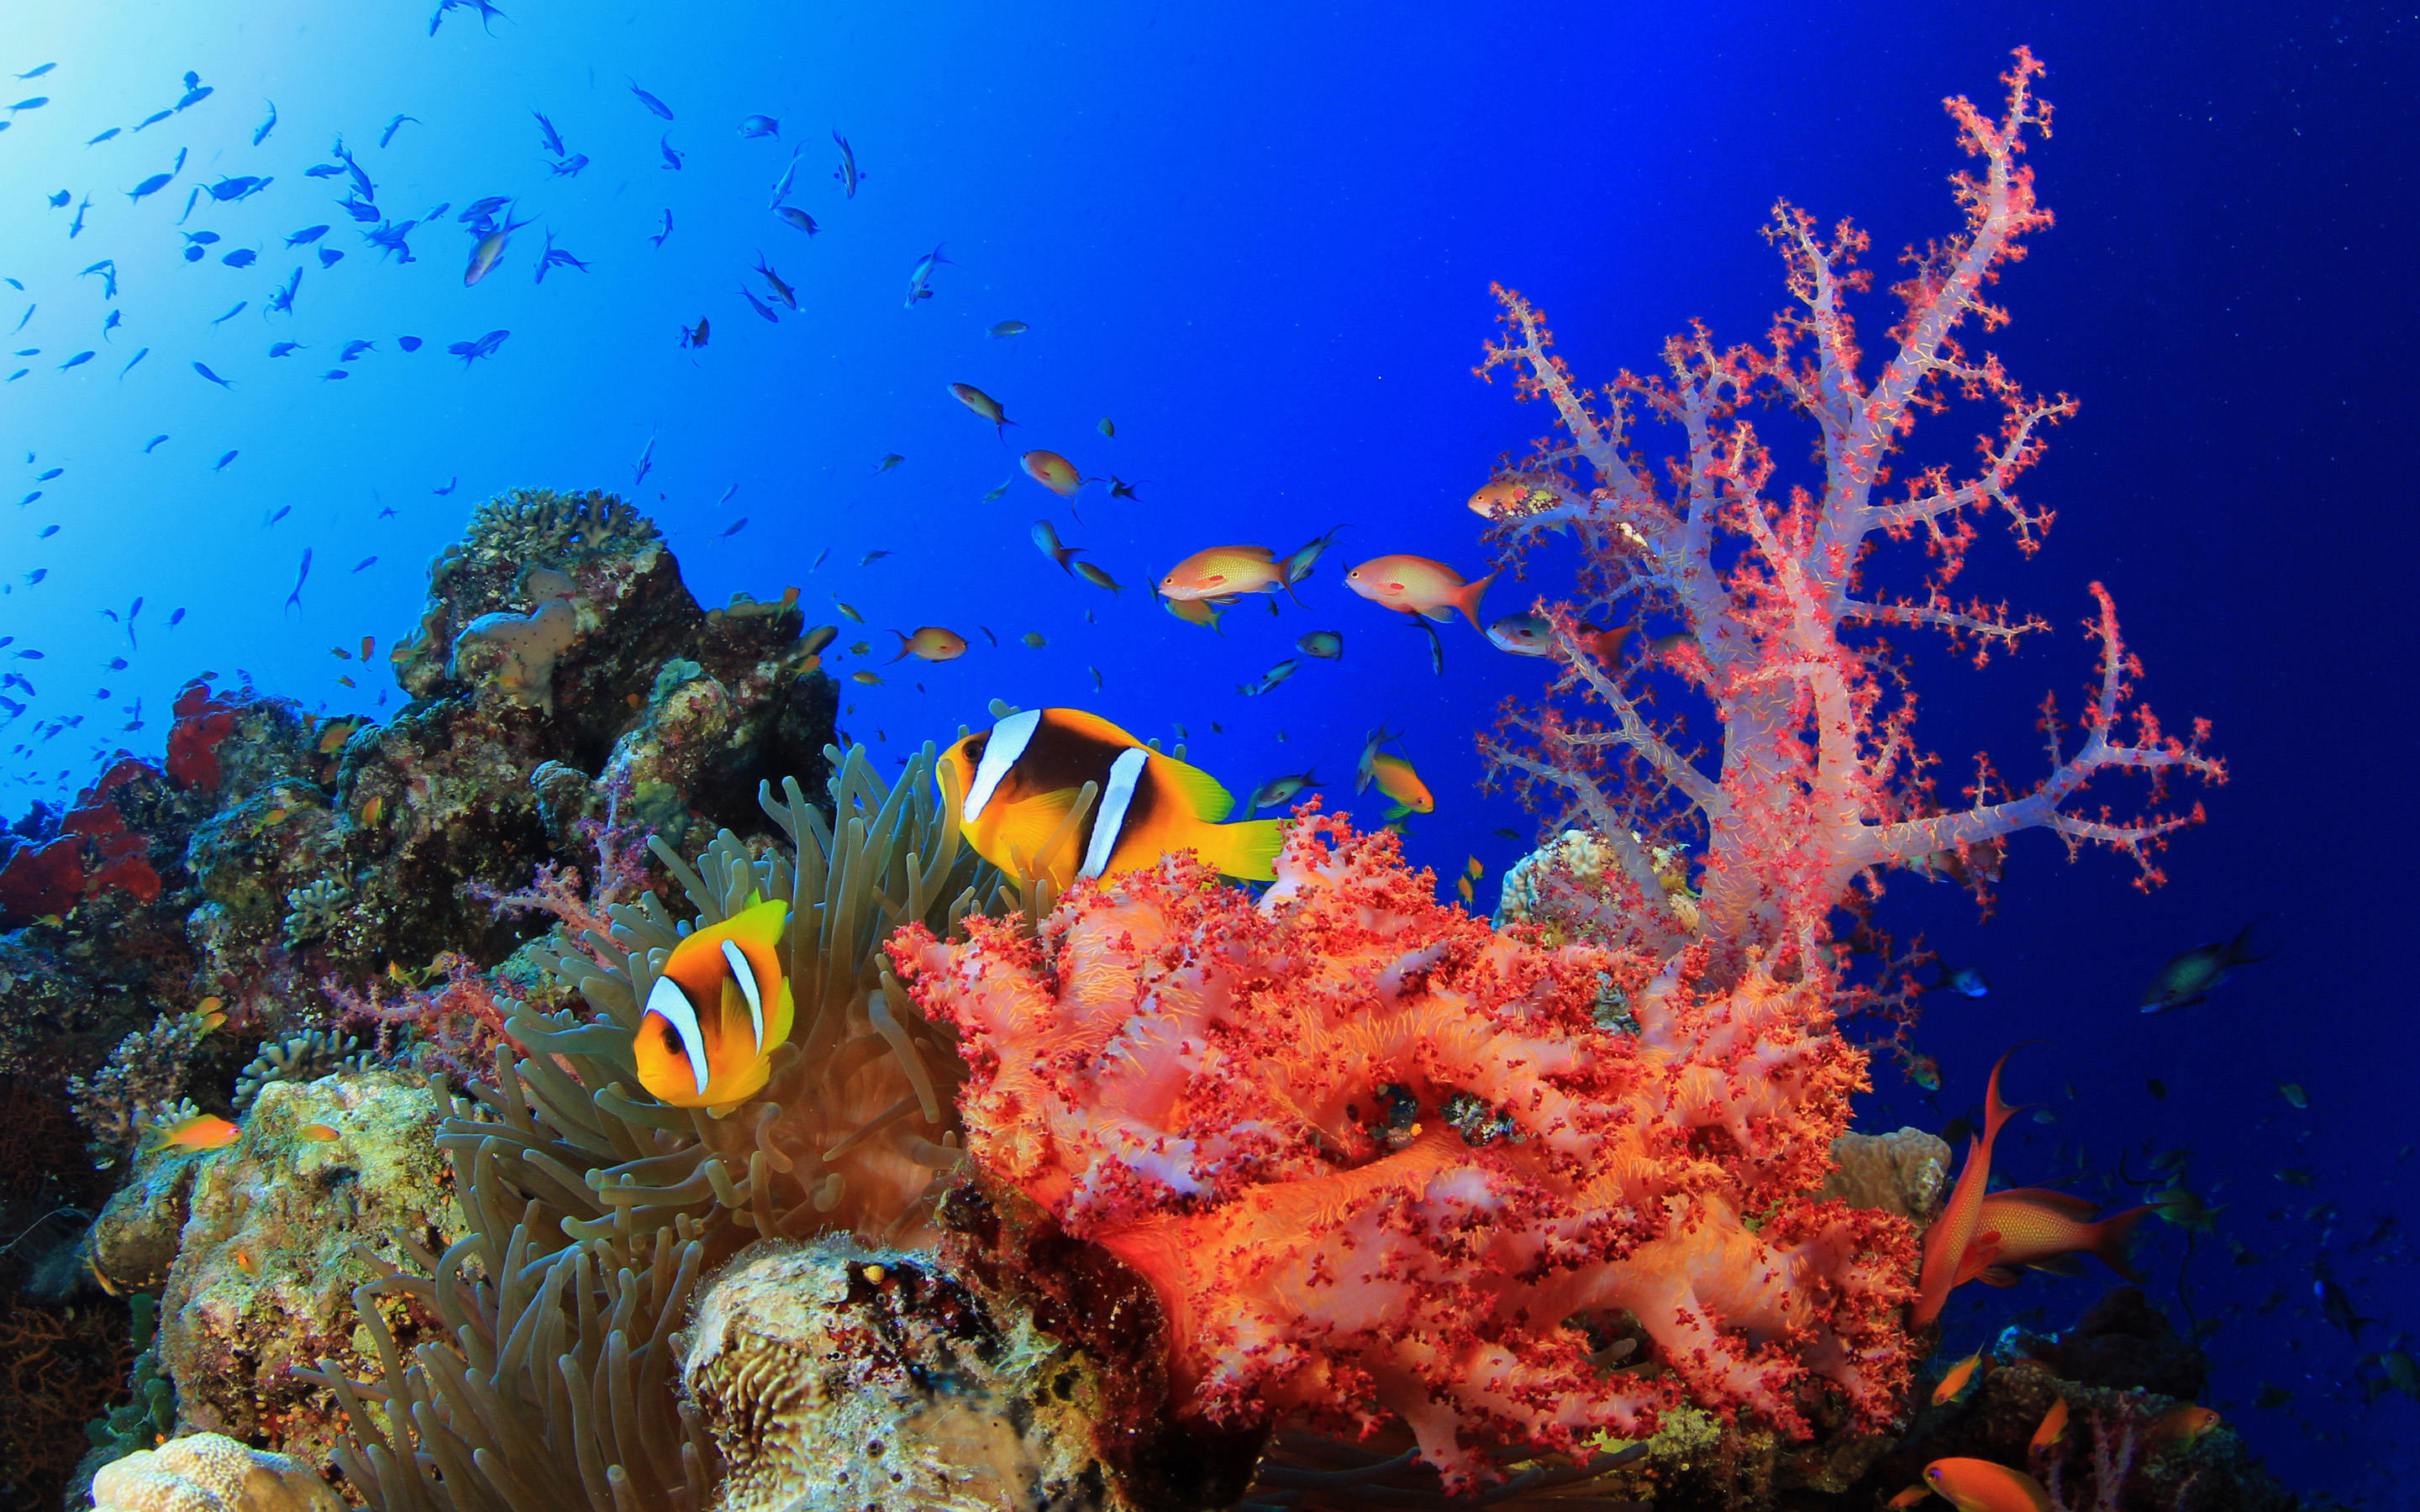 Coral Reefs Image   SA Wallpapers 2880x1800